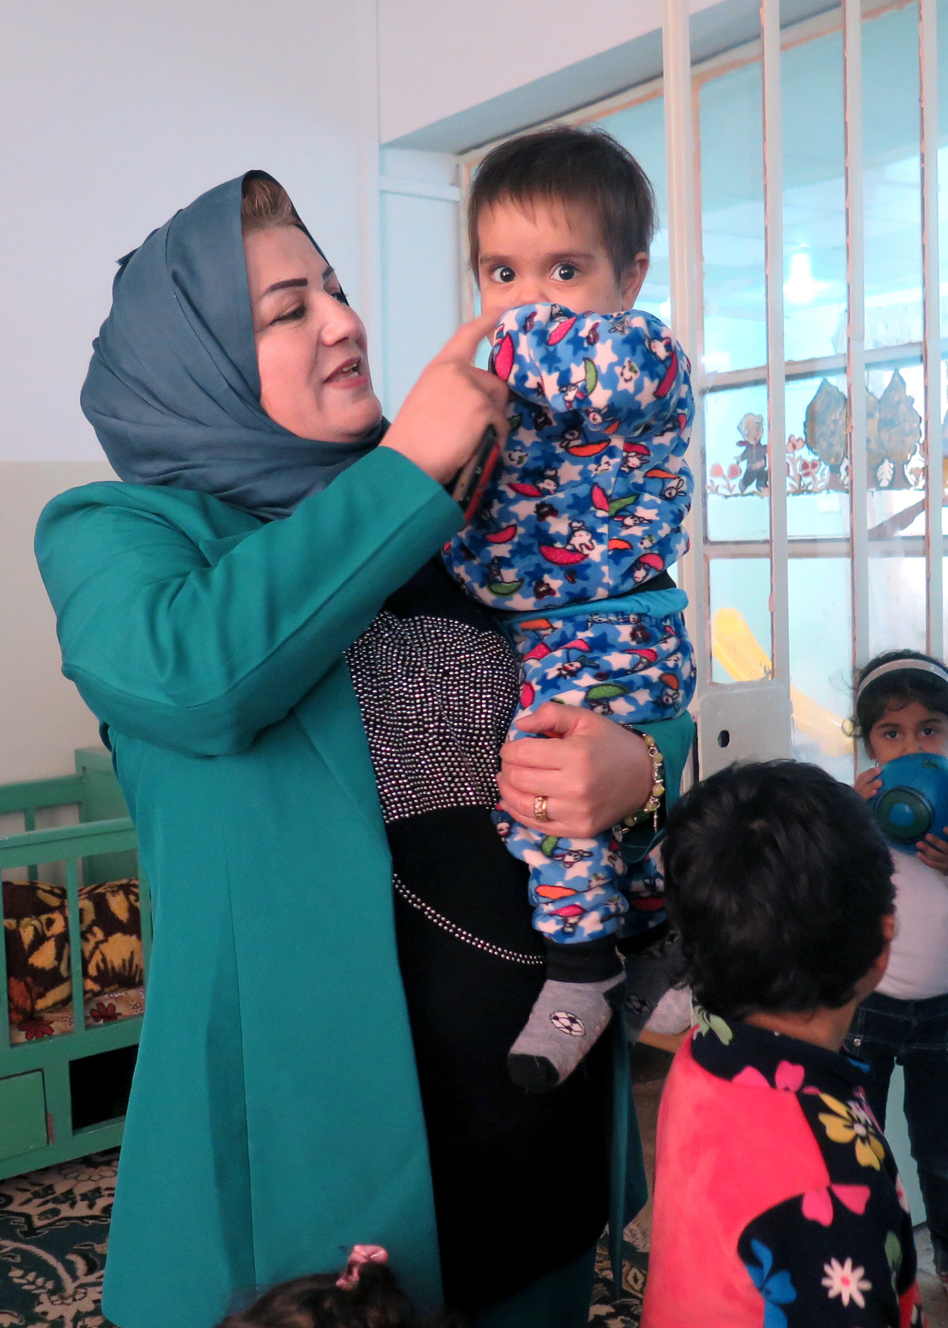 The other children are either orphaned, abandoned or rescued from kidnappers. The woman is Sukaina Ali Younis, founder of the new orphanage and in charge of women's and orphans' affairs in Mosul's Ninevah governorate.